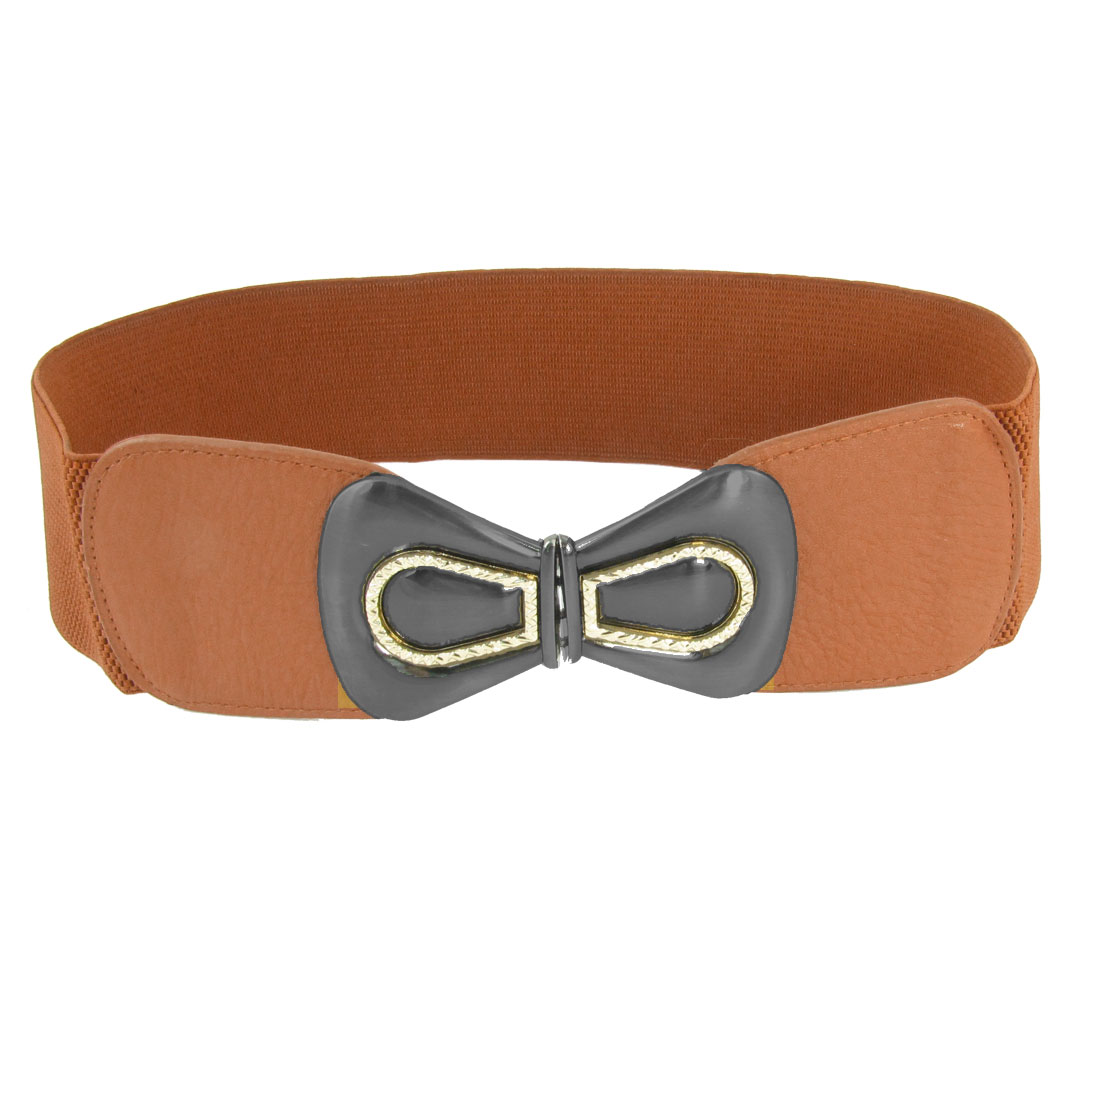 Women Gray Metal Interlocking Buckle 6cm Wide Brown Spandex Waist Belt